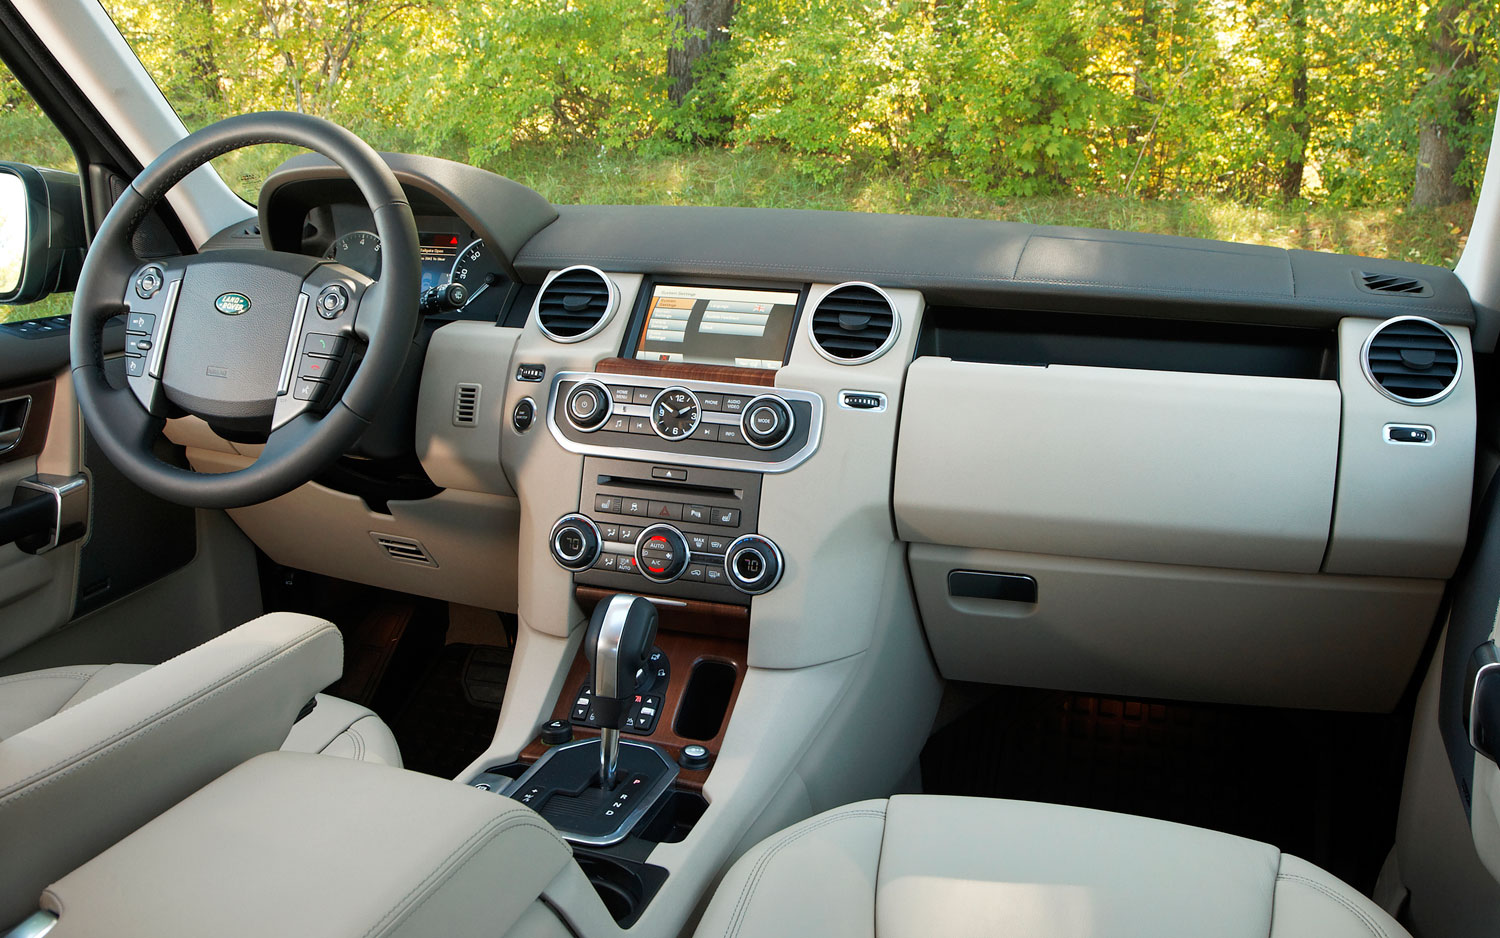 Land Rover Discovery interior #3